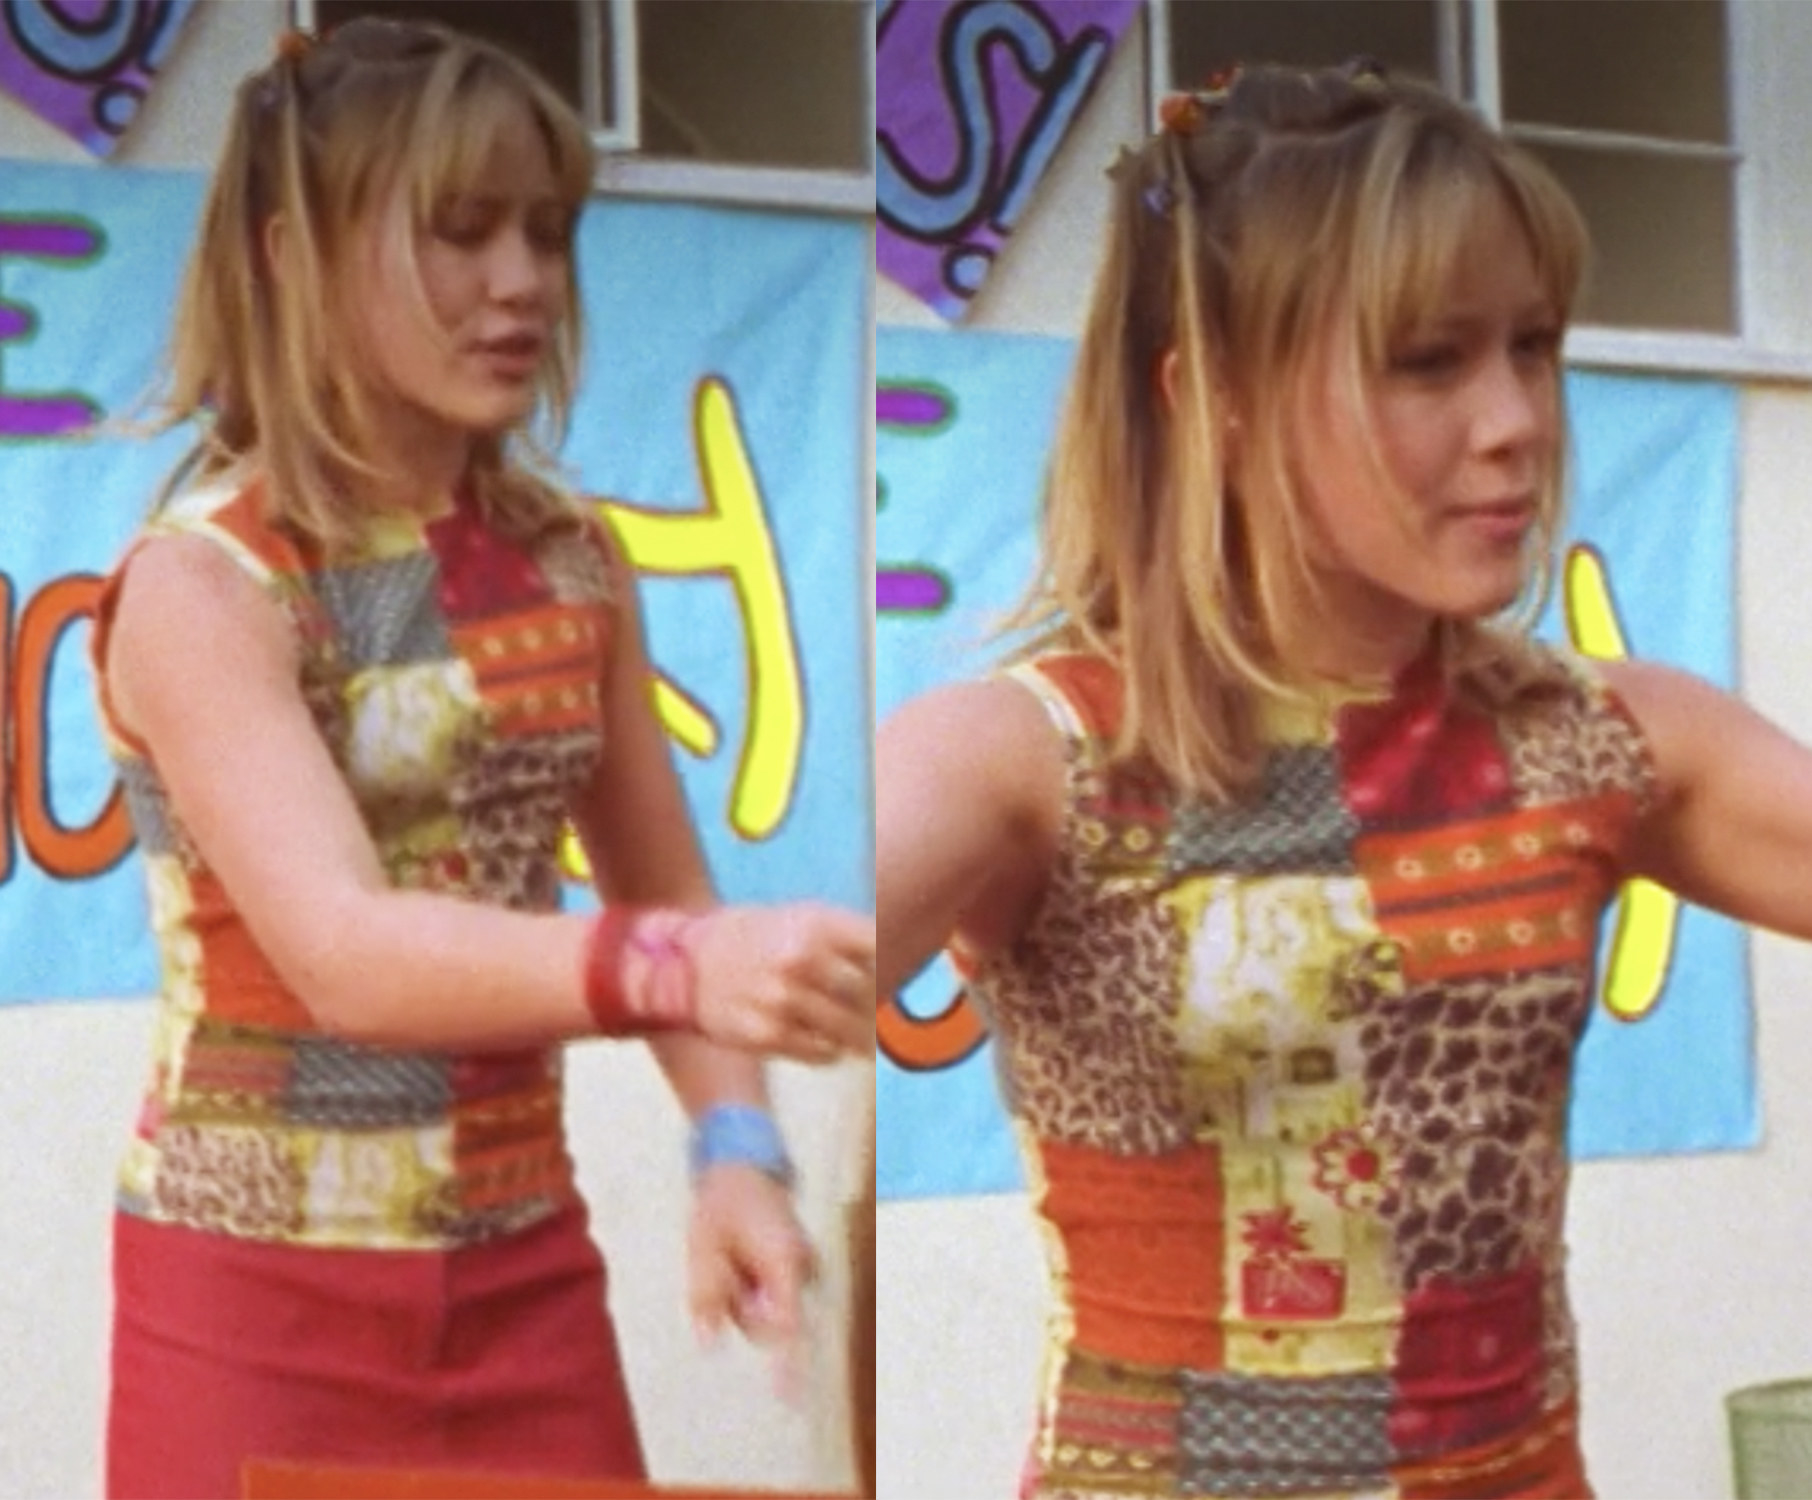 Lizzie's top is a bunch of mismatches squares